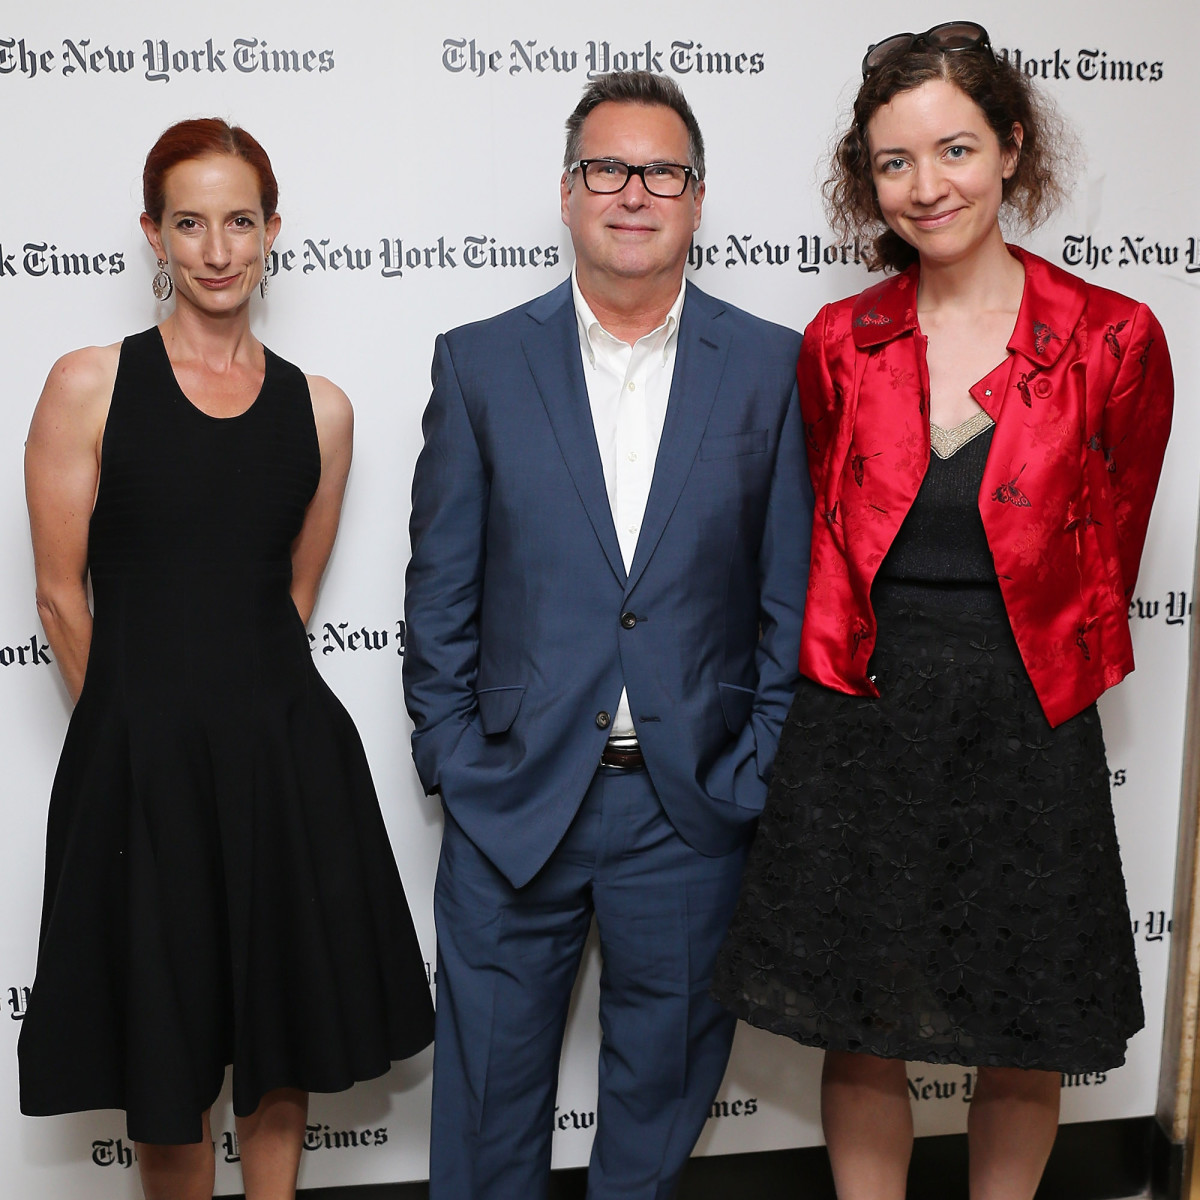 Vanessa Friedman, Stuart Emmrich and Alexandra Jacobs in 2014. Photo: Neilson Barnard/Getty Images for 'The New York Times'